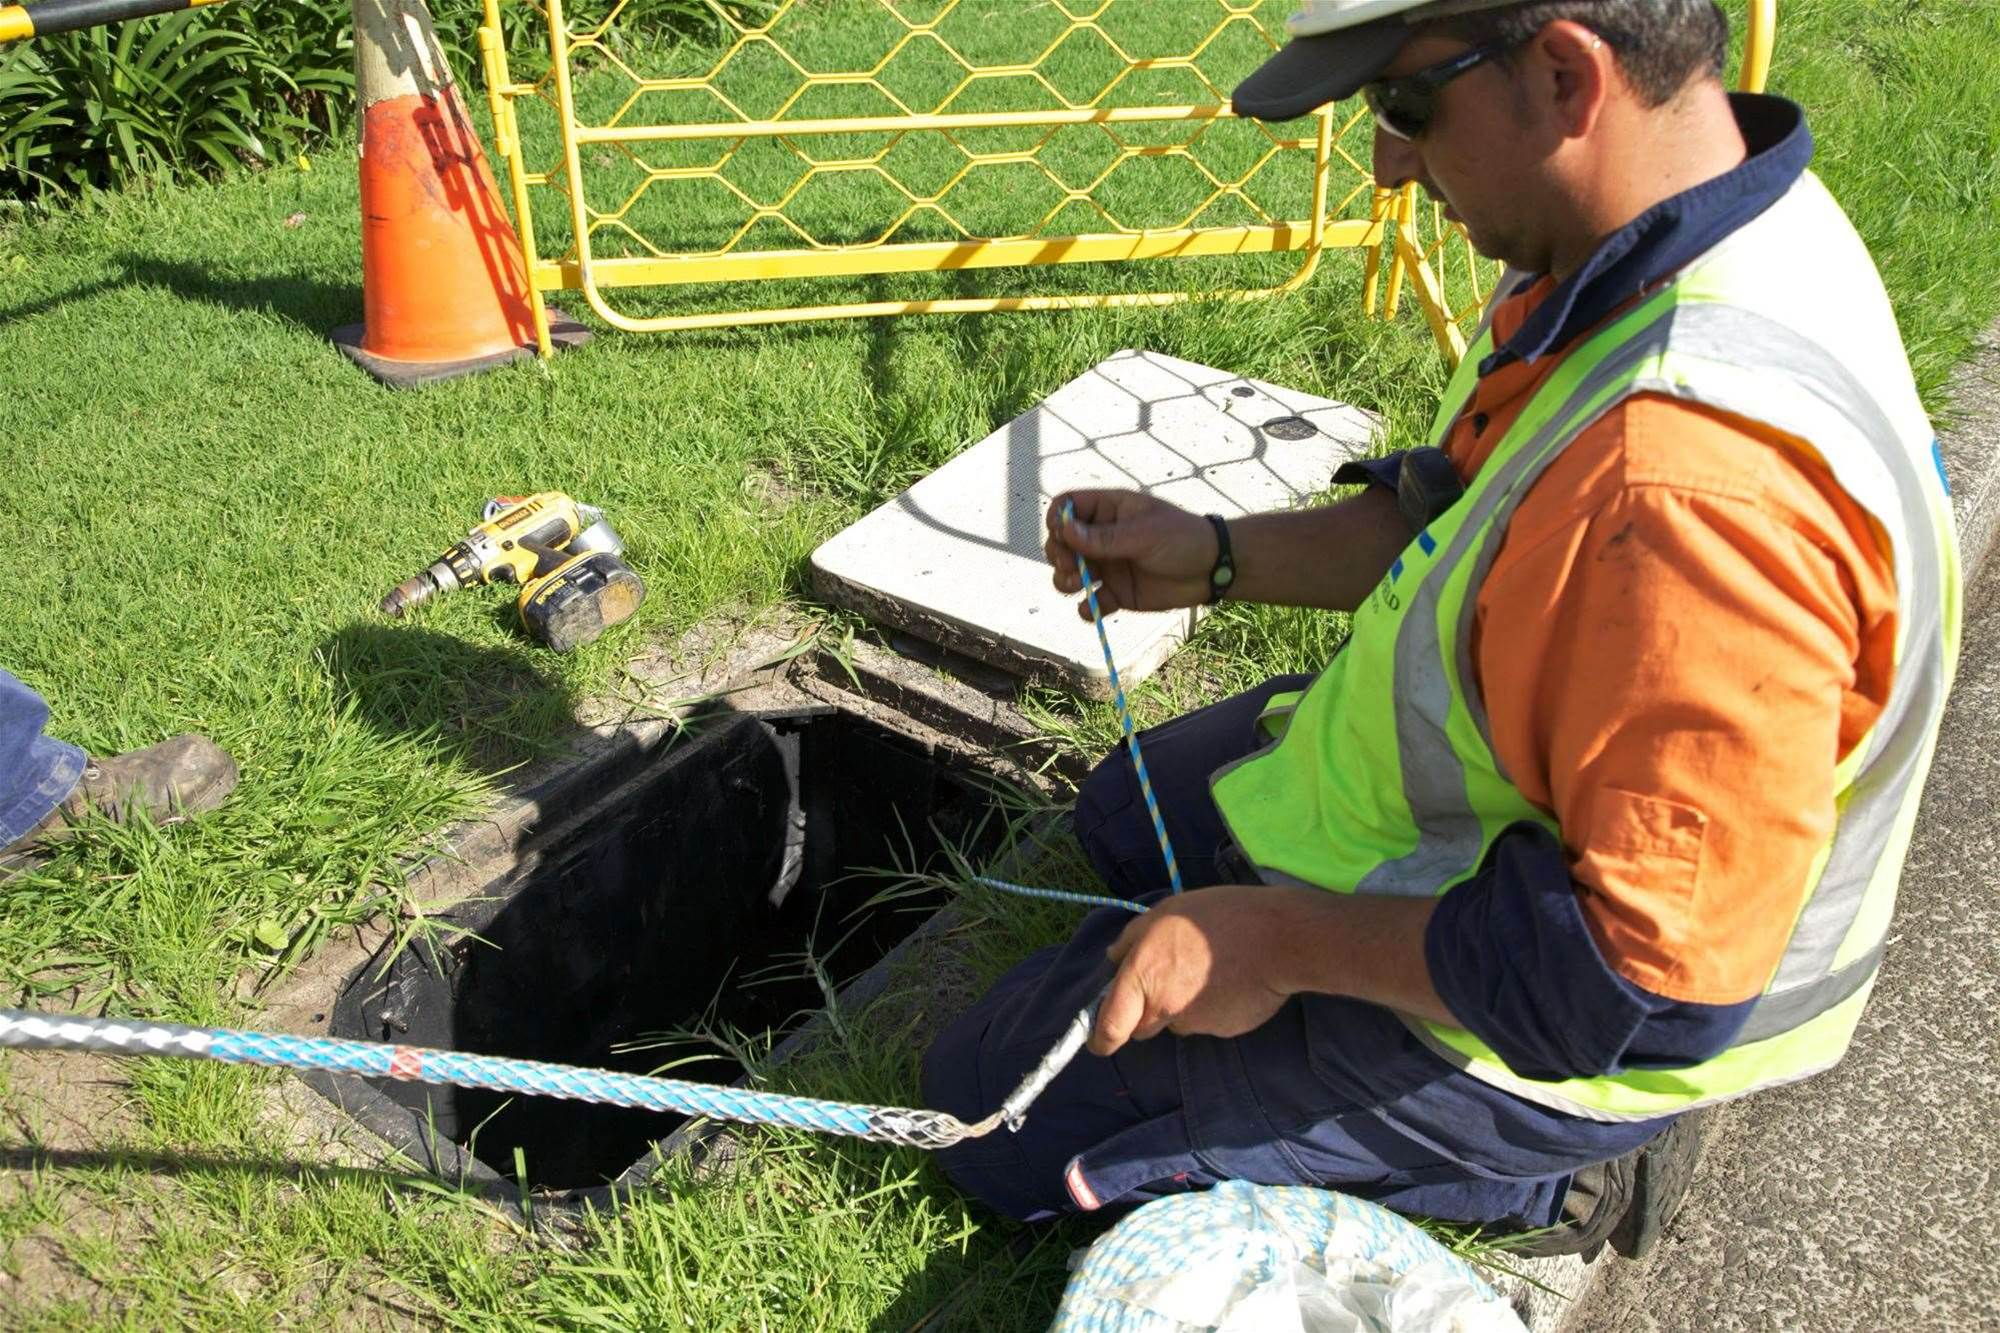 Australia, what do you think of the NBN?